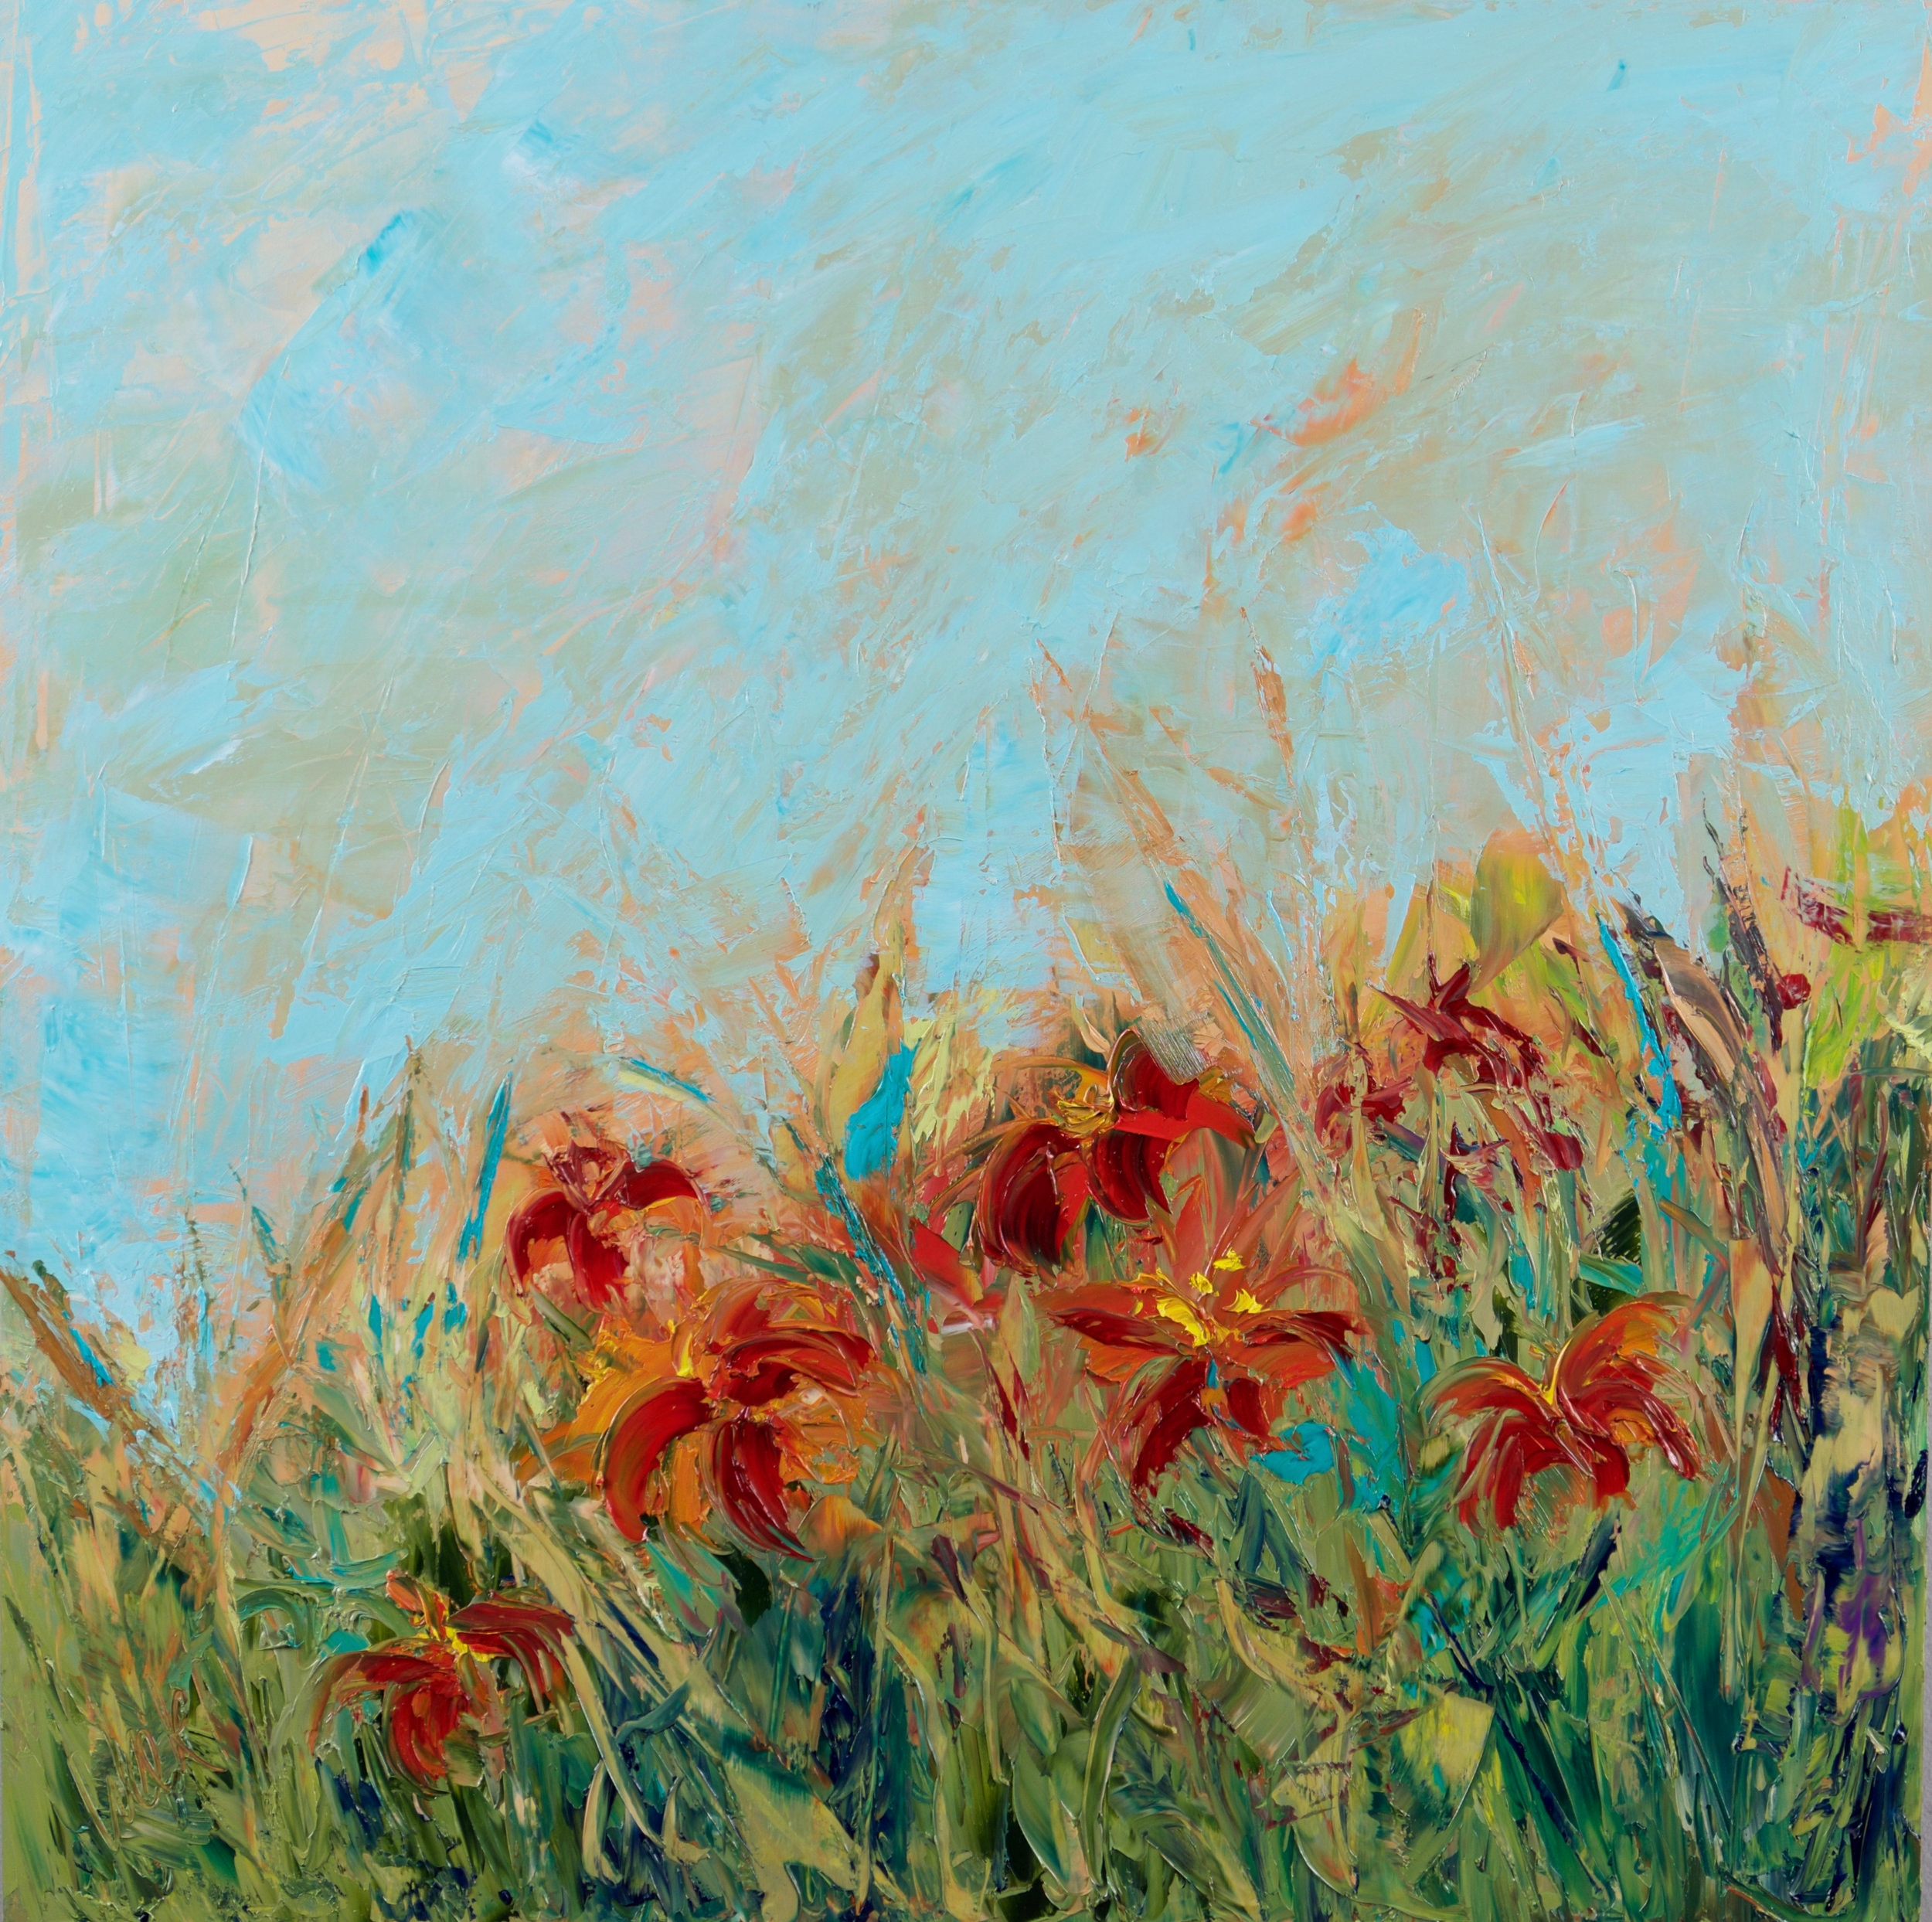 """Lillies of the Field"" - 24 x 24 inch"